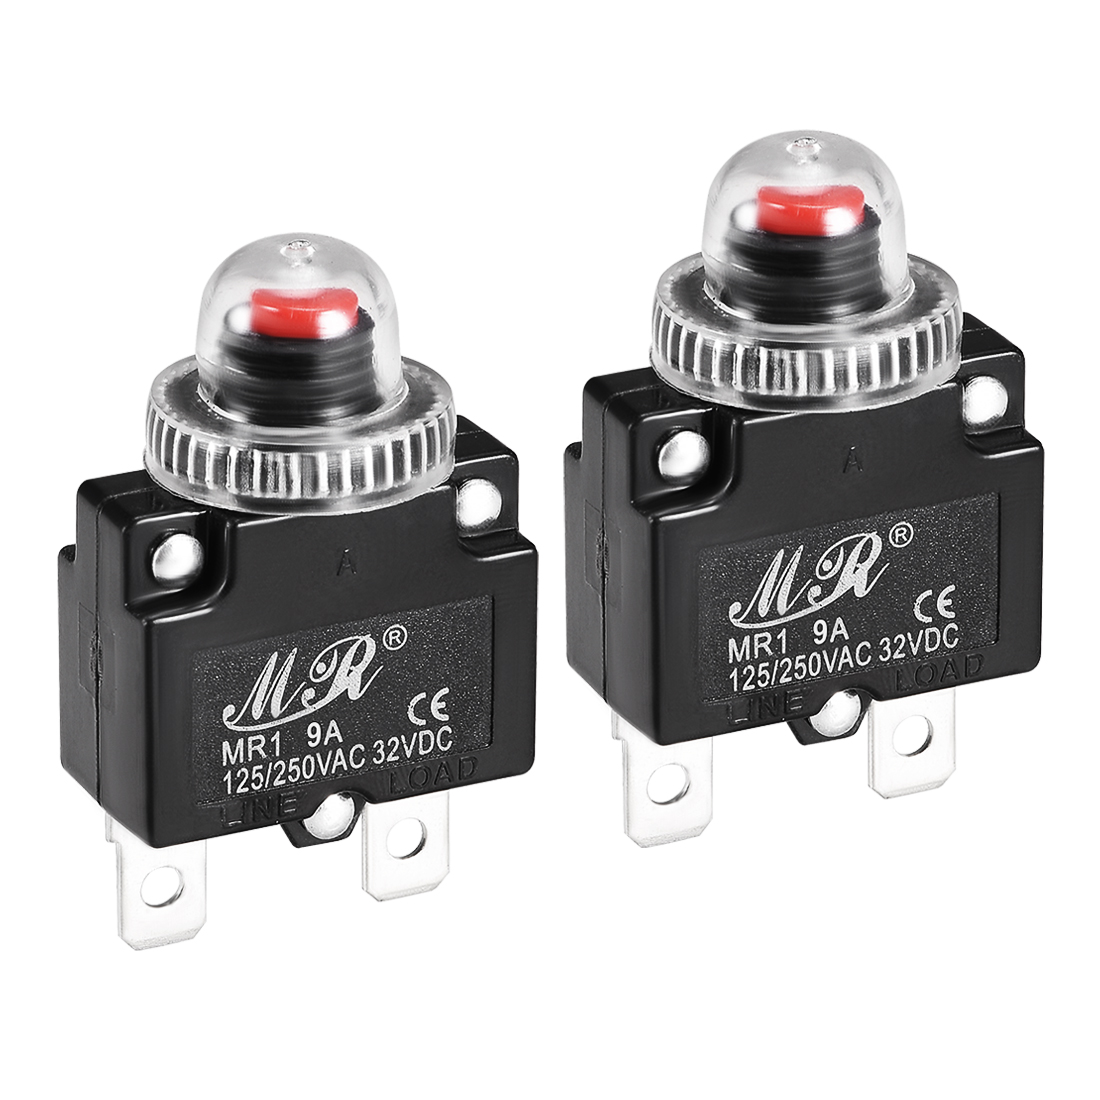 2 Pcs 9A 125/250V Push Button Reset Overload Protector Thermal Circuit Breaker